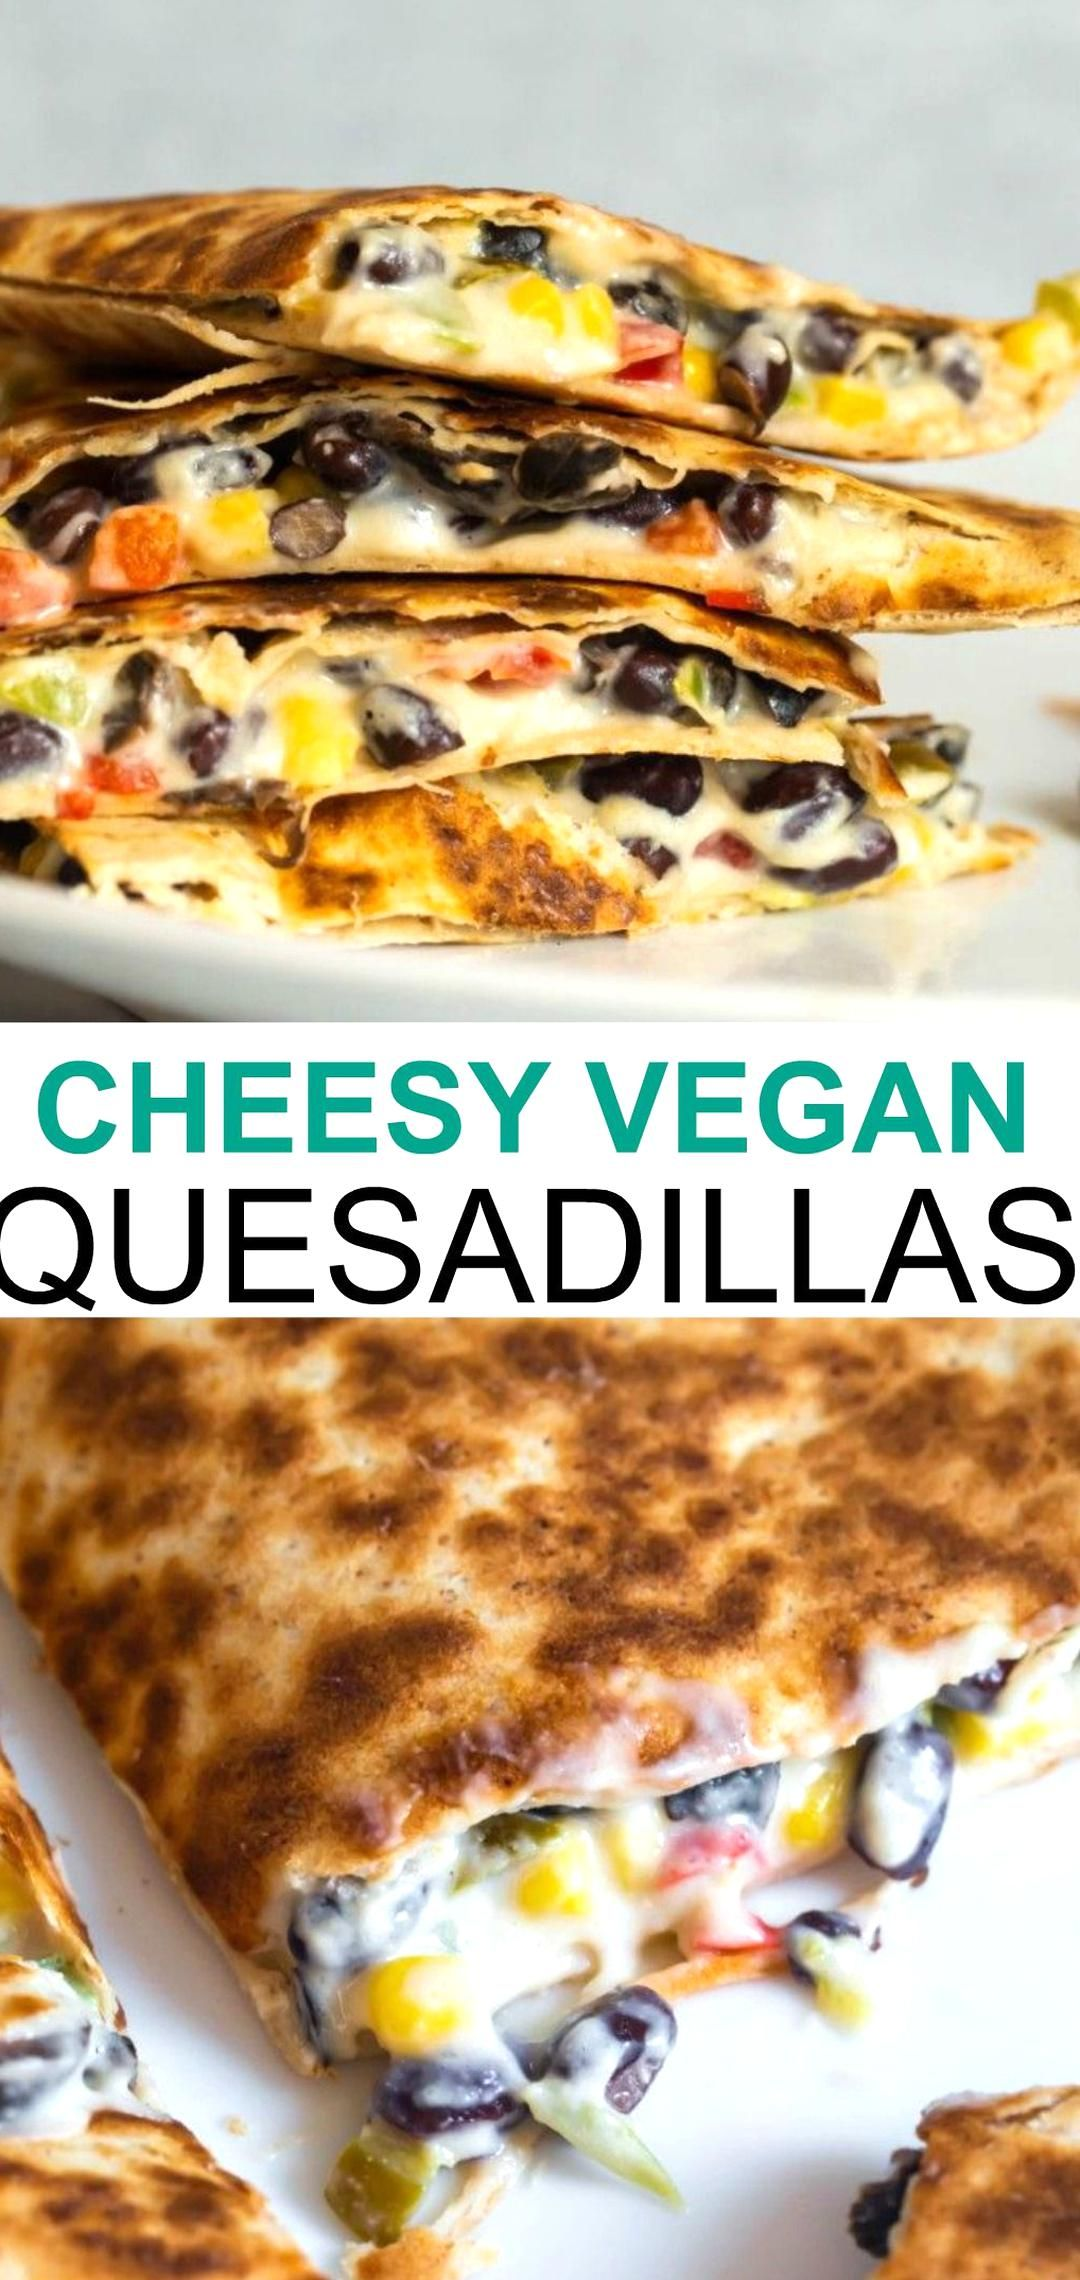 Easy Cheesy Vegan Quesadillas With Homemade Cashew Cheese Are Absolutely Delicious Made With Healthy Plan In 2020 Vegan Main Dishes Savory Vegan Vegan Mexican Recipes